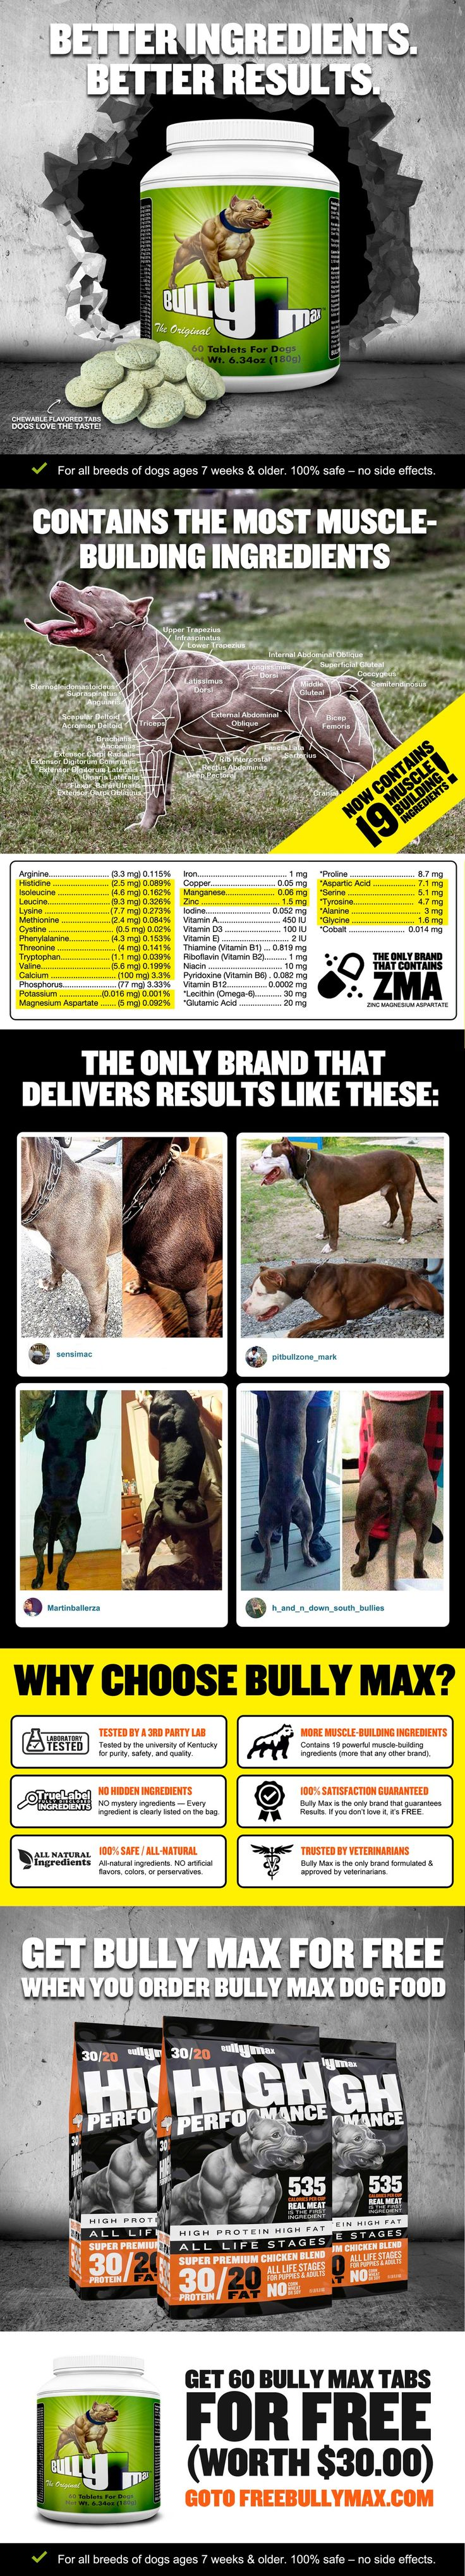 Bully Max just got better! Now contains 19 powerful muscle building ingredients. Save for all breeds of dogs ages 7 weeks & older. #bullymax #pitbulls #pitbull